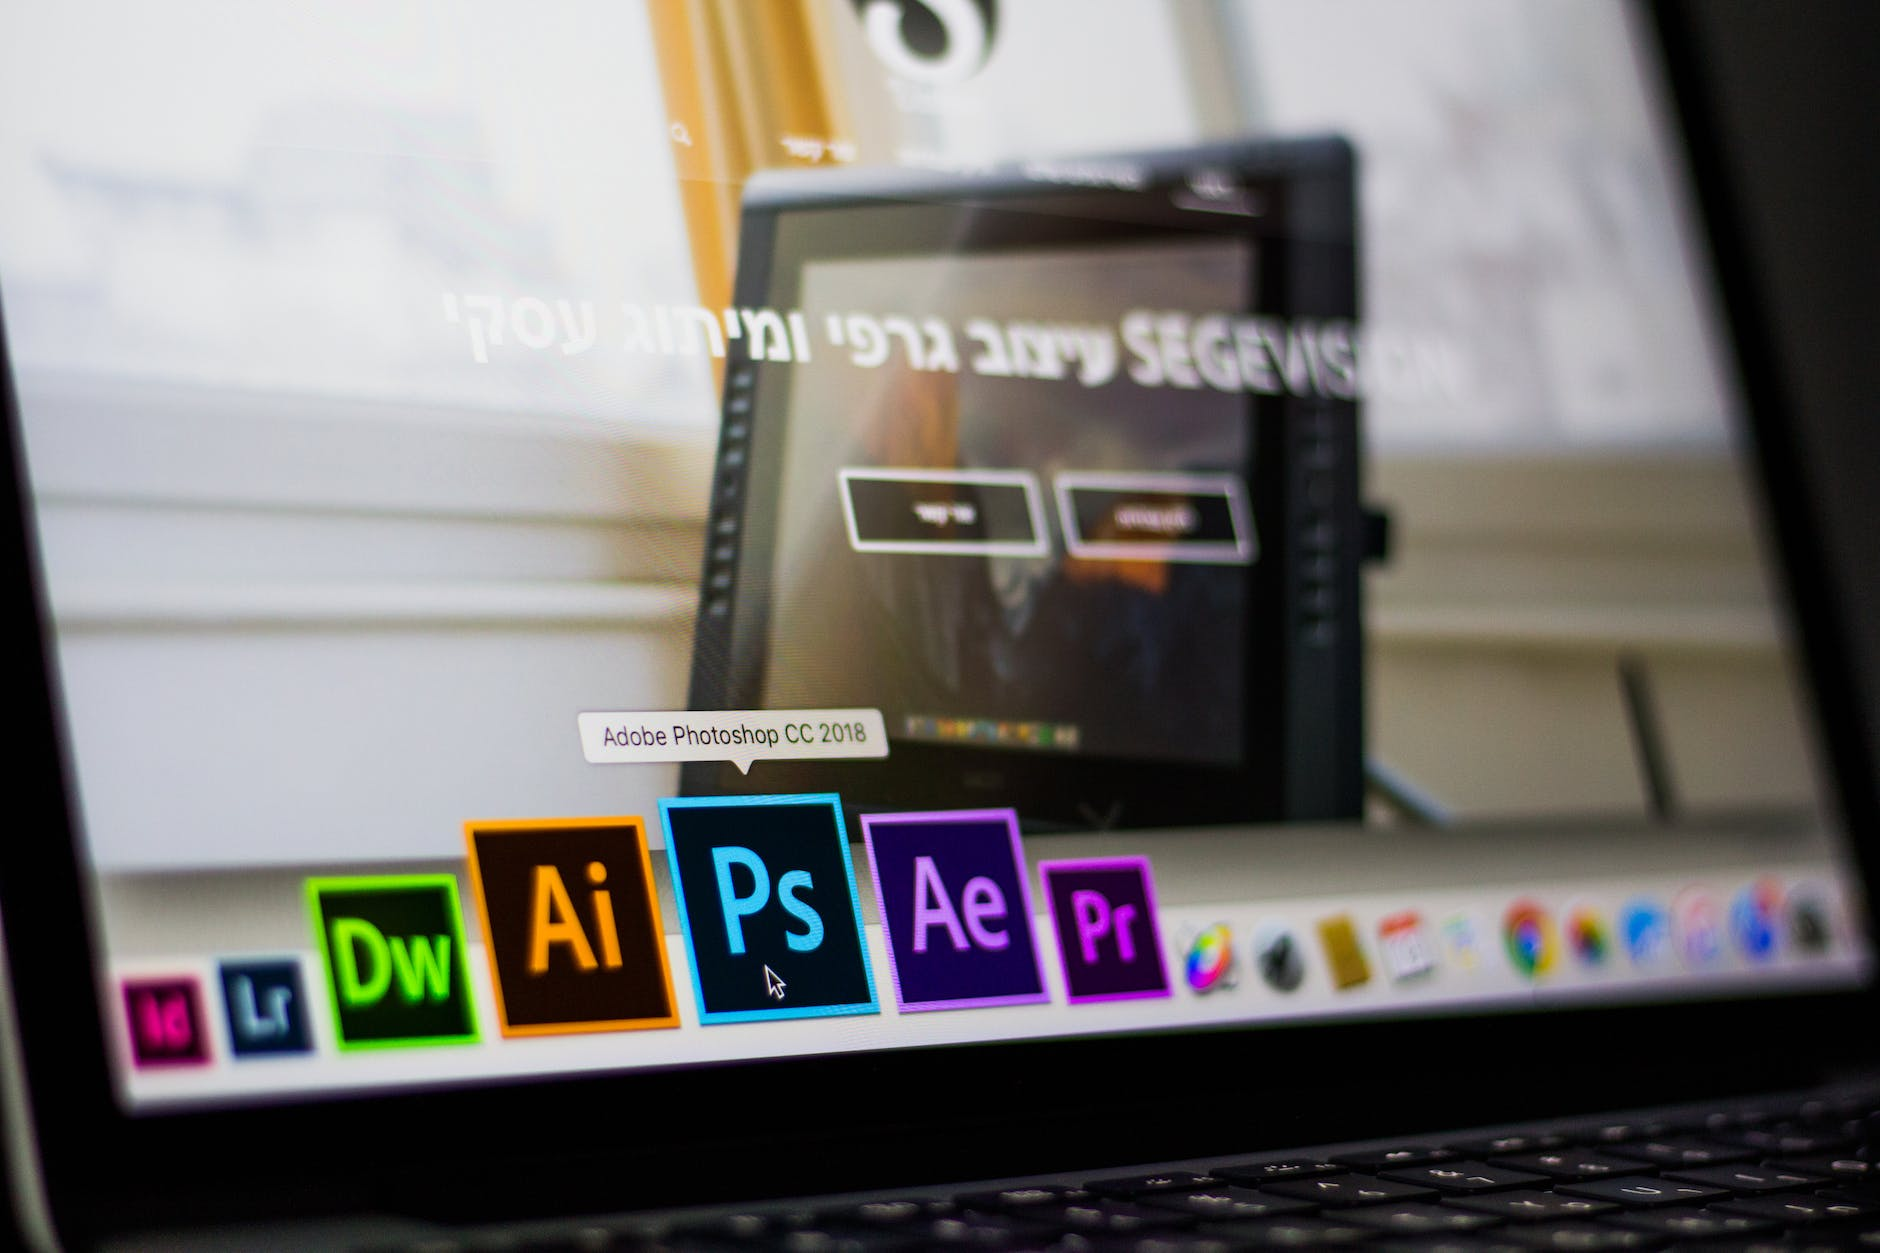 photoshop application on a laptop monitor